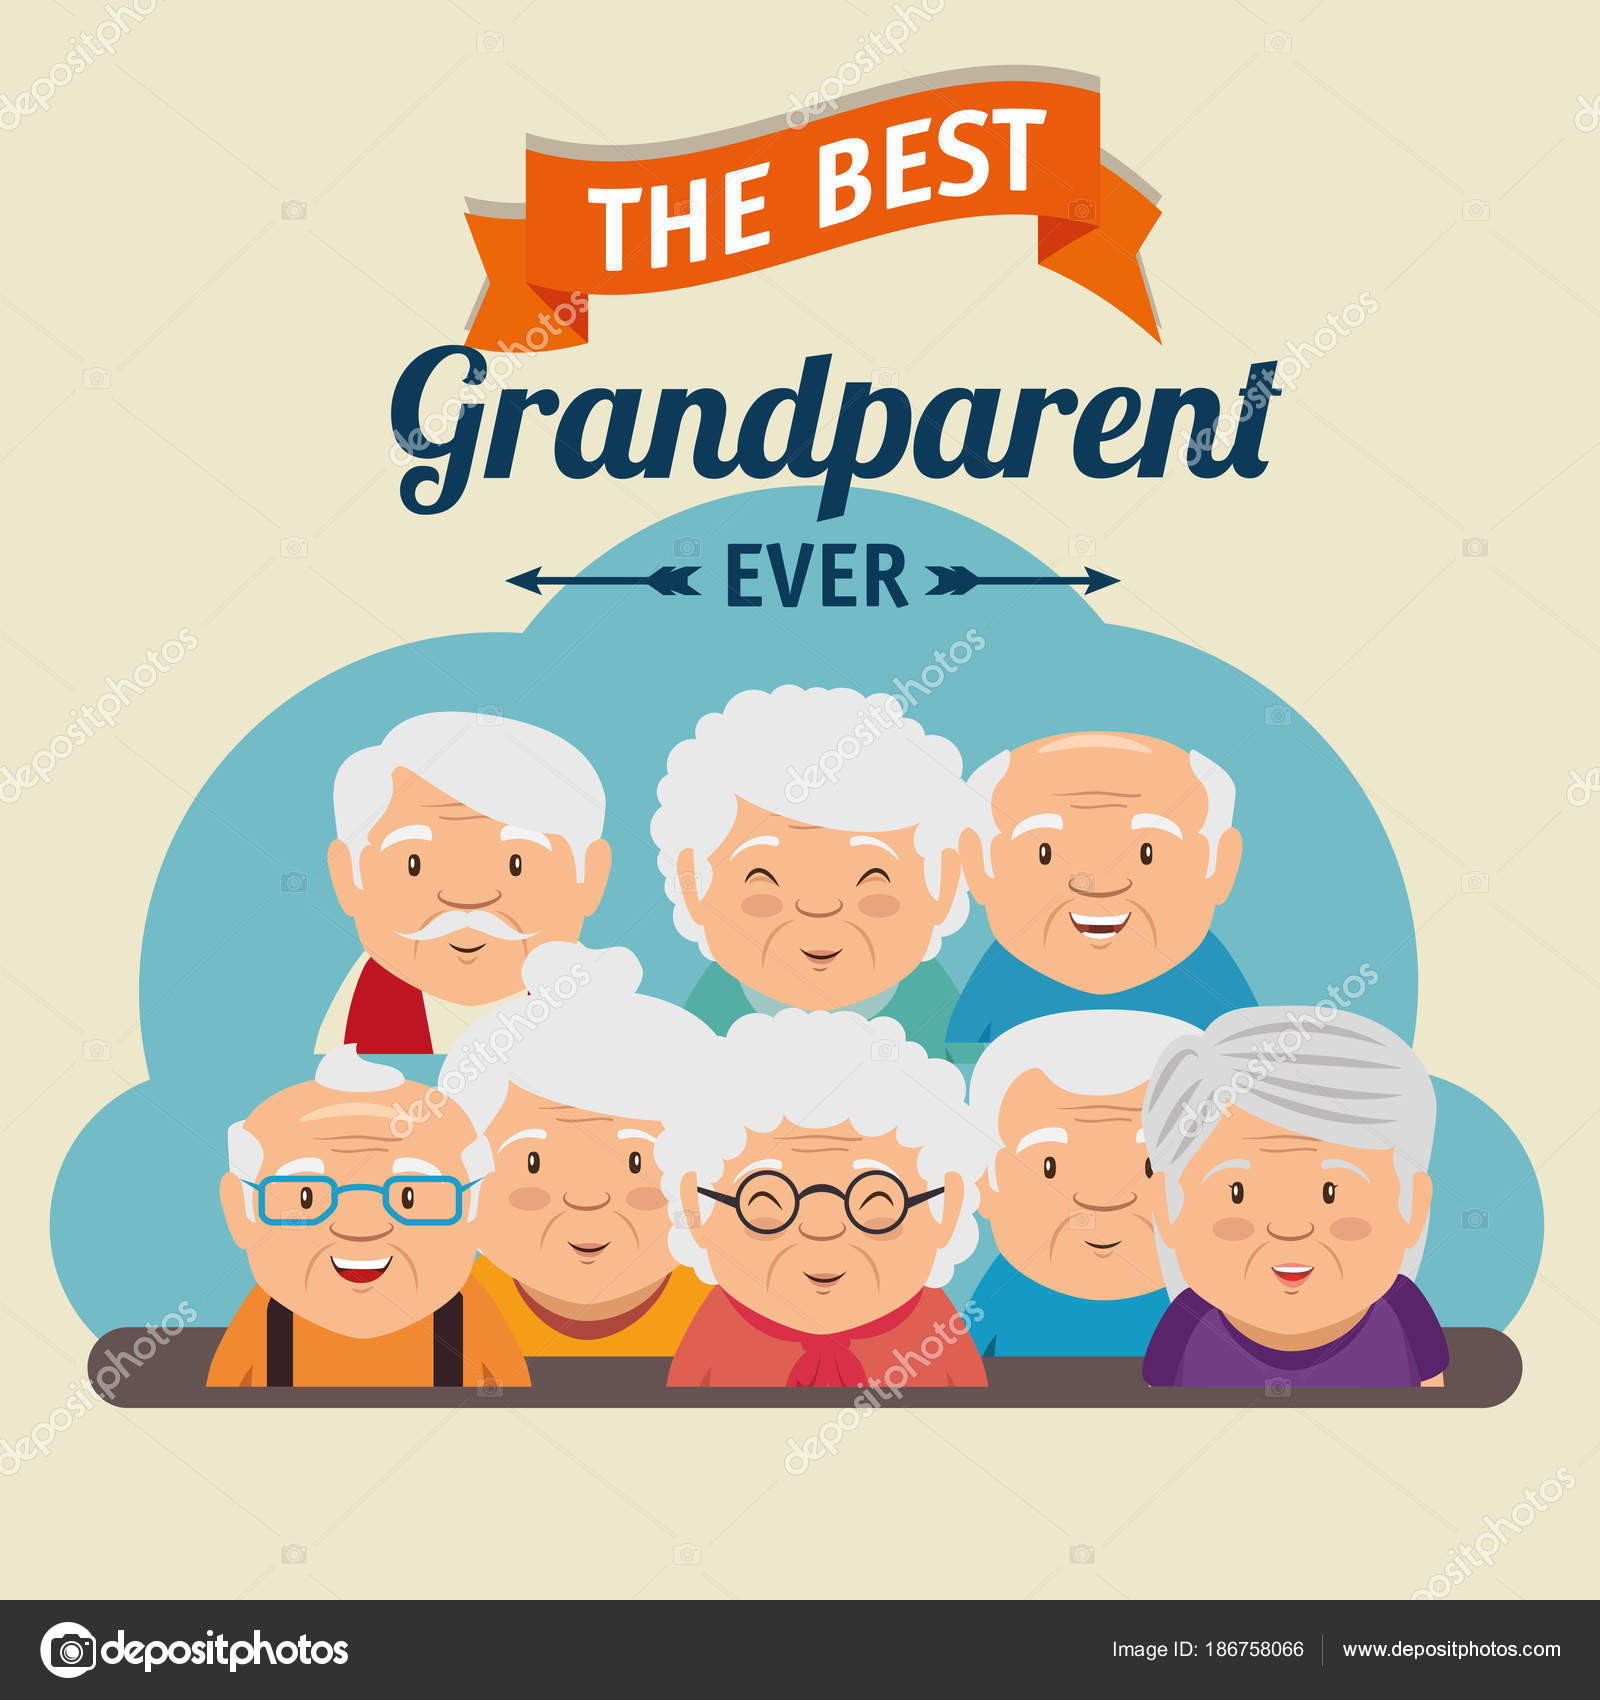 Grandparents day greeting card stock vector yupiramos 186758066 grandparents day greeting card stock vector m4hsunfo